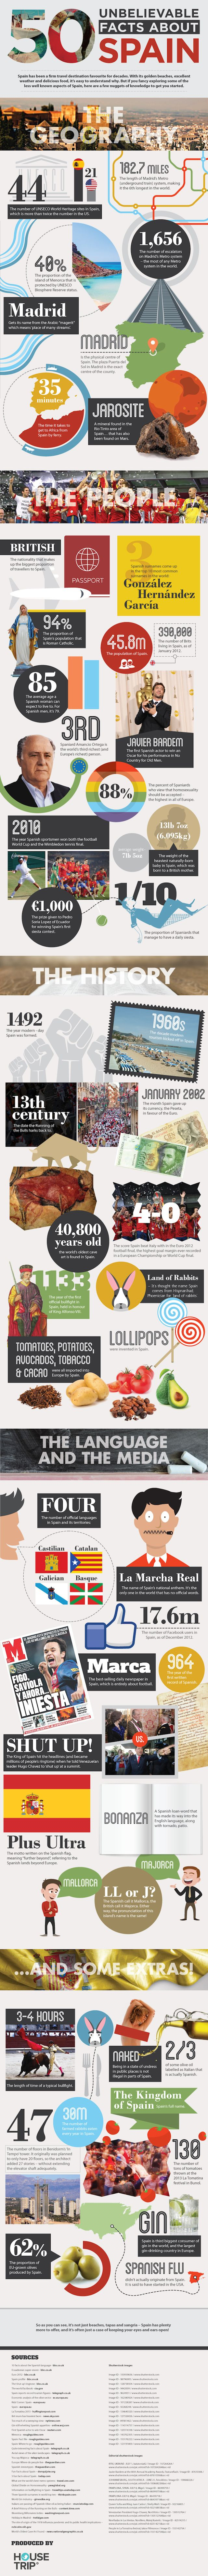 Lollipops were invented in Spain!